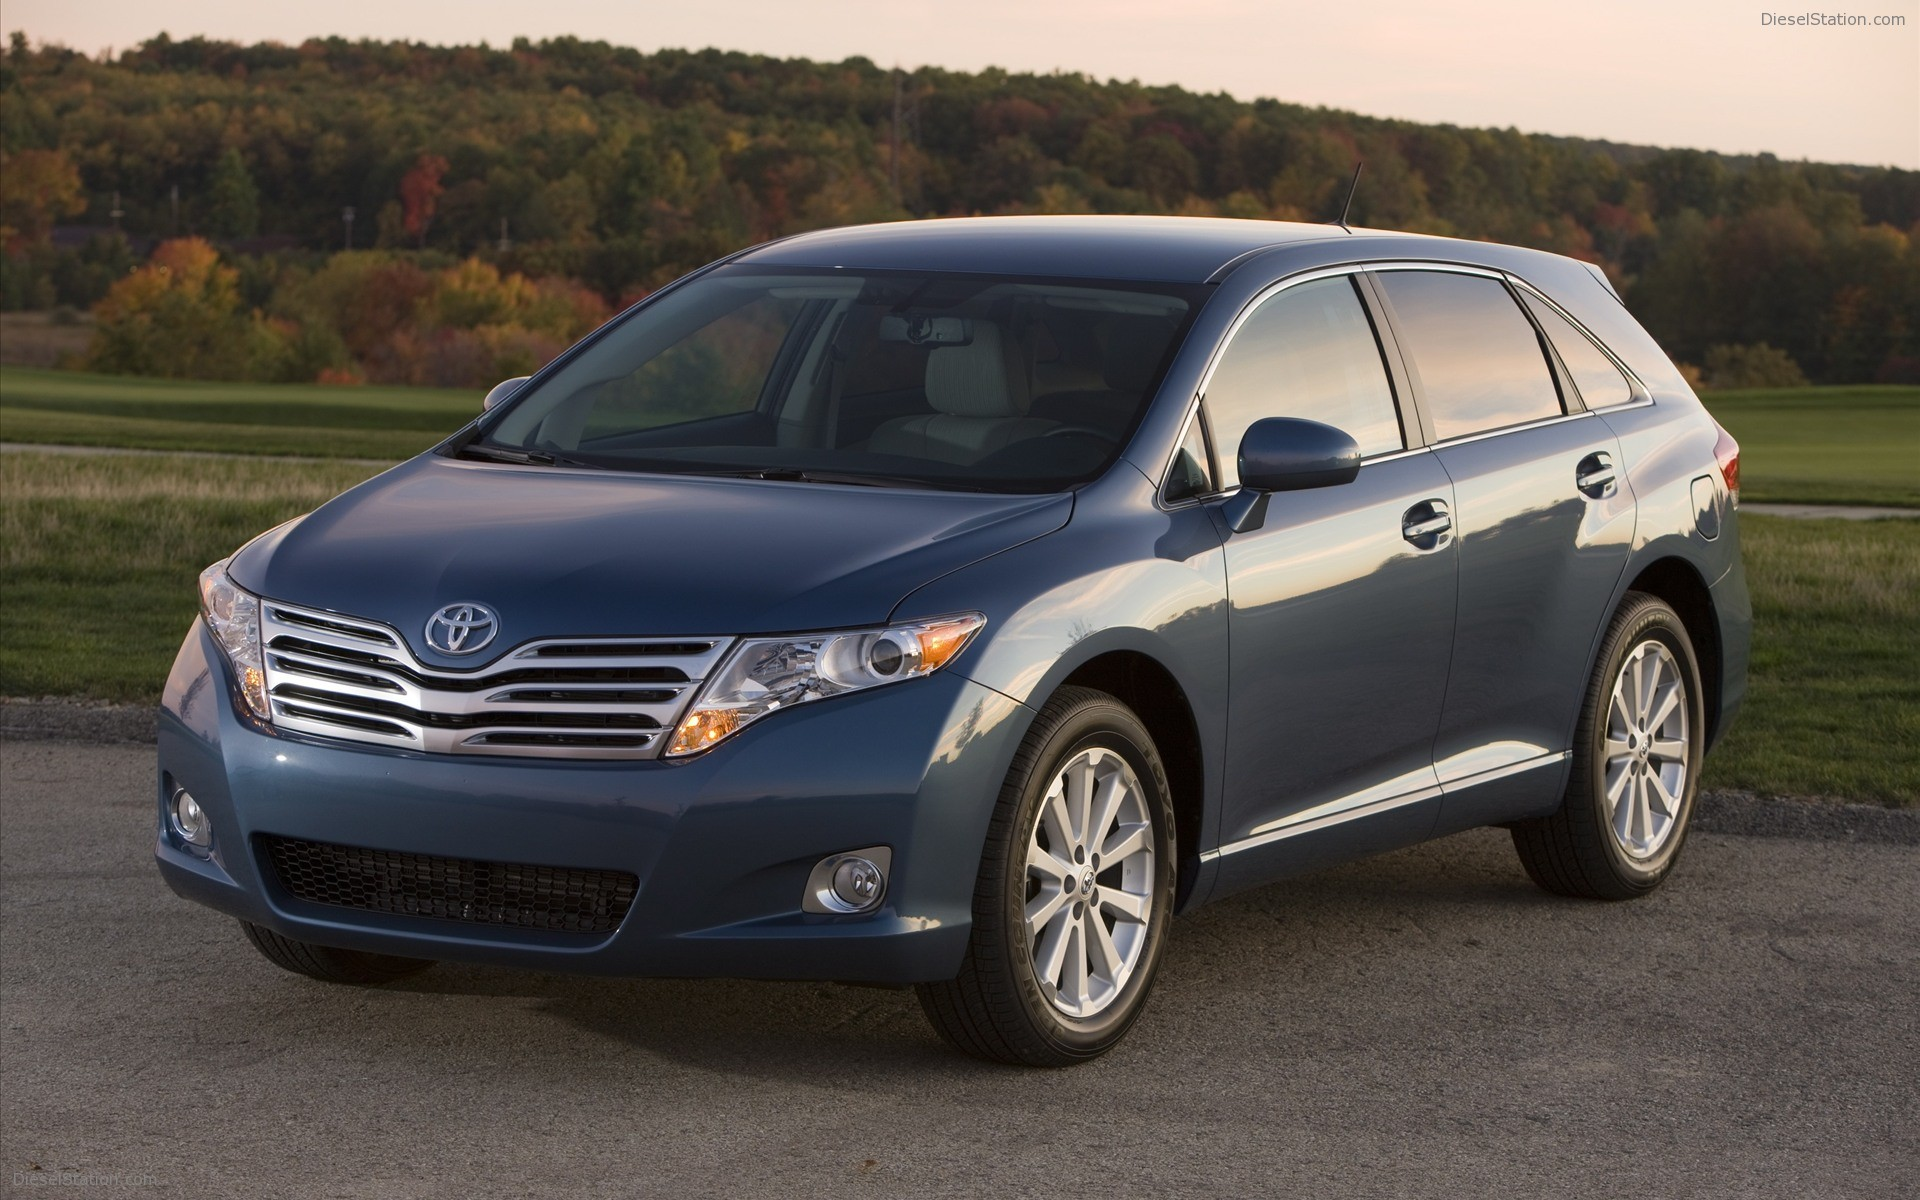 2014 Toyota Venza V 6 Awd First Test furthermore 1997 Toyota RAV4 Pictures C4047 additionally 4u2 toyota venza 09 golden umber mica colorspan20092013 additionally Toyota Urban Cruiser further Toyota corolla matrix 2009. on 2009 venza